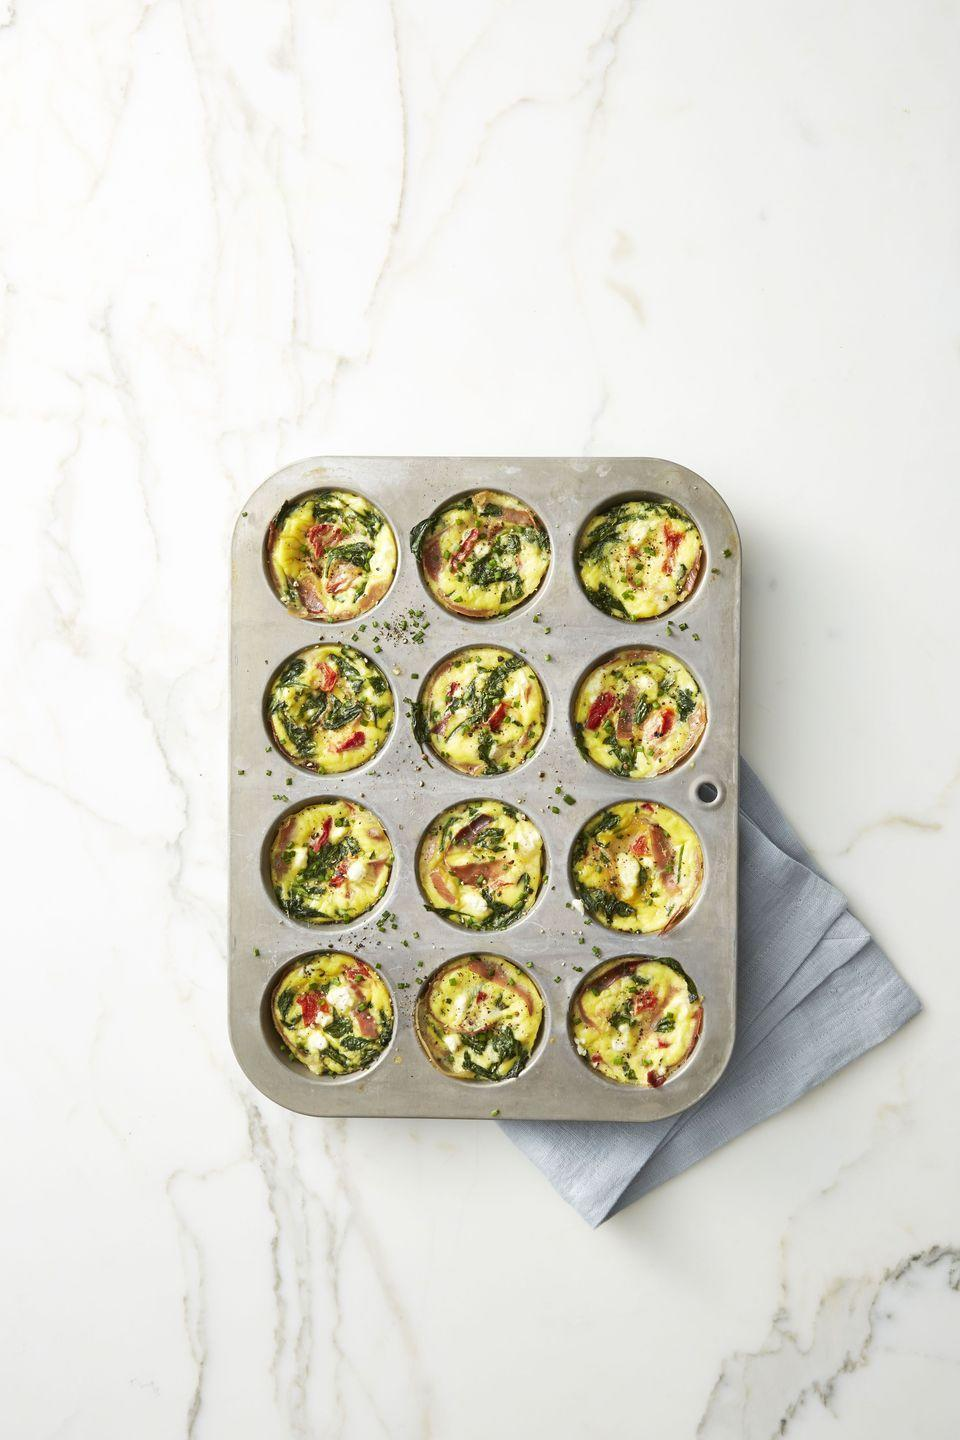 "<p>These tasty bake-and-take egg cups are packed with protein.</p><p><em><a href=""https://www.goodhousekeeping.com/food-recipes/easy/a42206/spinach-and-prosciutto-frittata-muffins-recipe/"" rel=""nofollow noopener"" target=""_blank"" data-ylk=""slk:Get the recipe for Spinach and Prosciutto Frittata Muffins »"" class=""link rapid-noclick-resp"">Get the recipe for Spinach and Prosciutto Frittata Muffins » </a></em></p><p><strong>RELATED: </strong><a href=""https://www.goodhousekeeping.com/health/diet-nutrition/g34931701/high-protein-breakfast-ideas/"" rel=""nofollow noopener"" target=""_blank"" data-ylk=""slk:25+ High-Protein Breakfast Recipes to Get Your Day Started Right"" class=""link rapid-noclick-resp"">25+ High-Protein Breakfast Recipes to Get Your Day Started Right</a></p>"